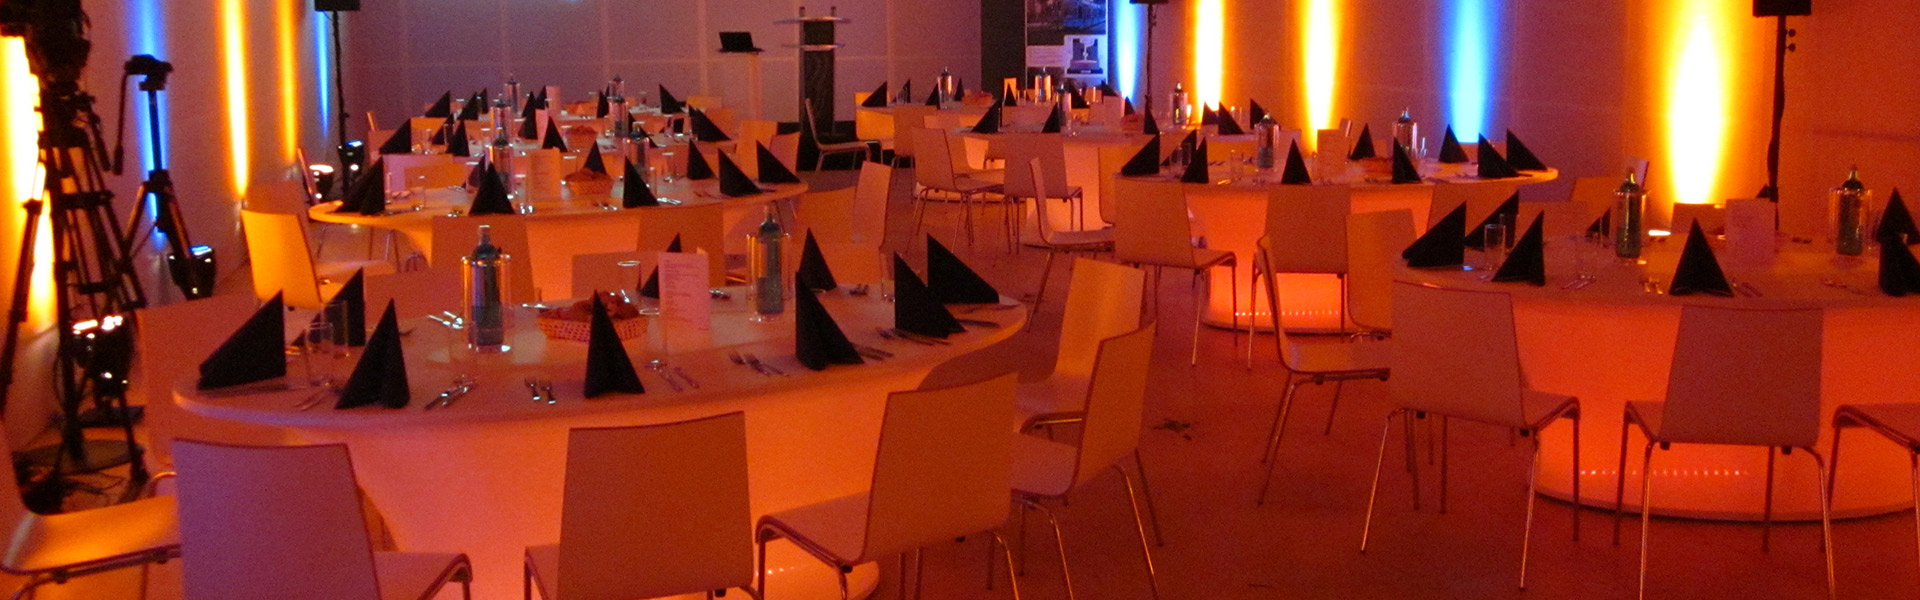 event-location-frankfurt